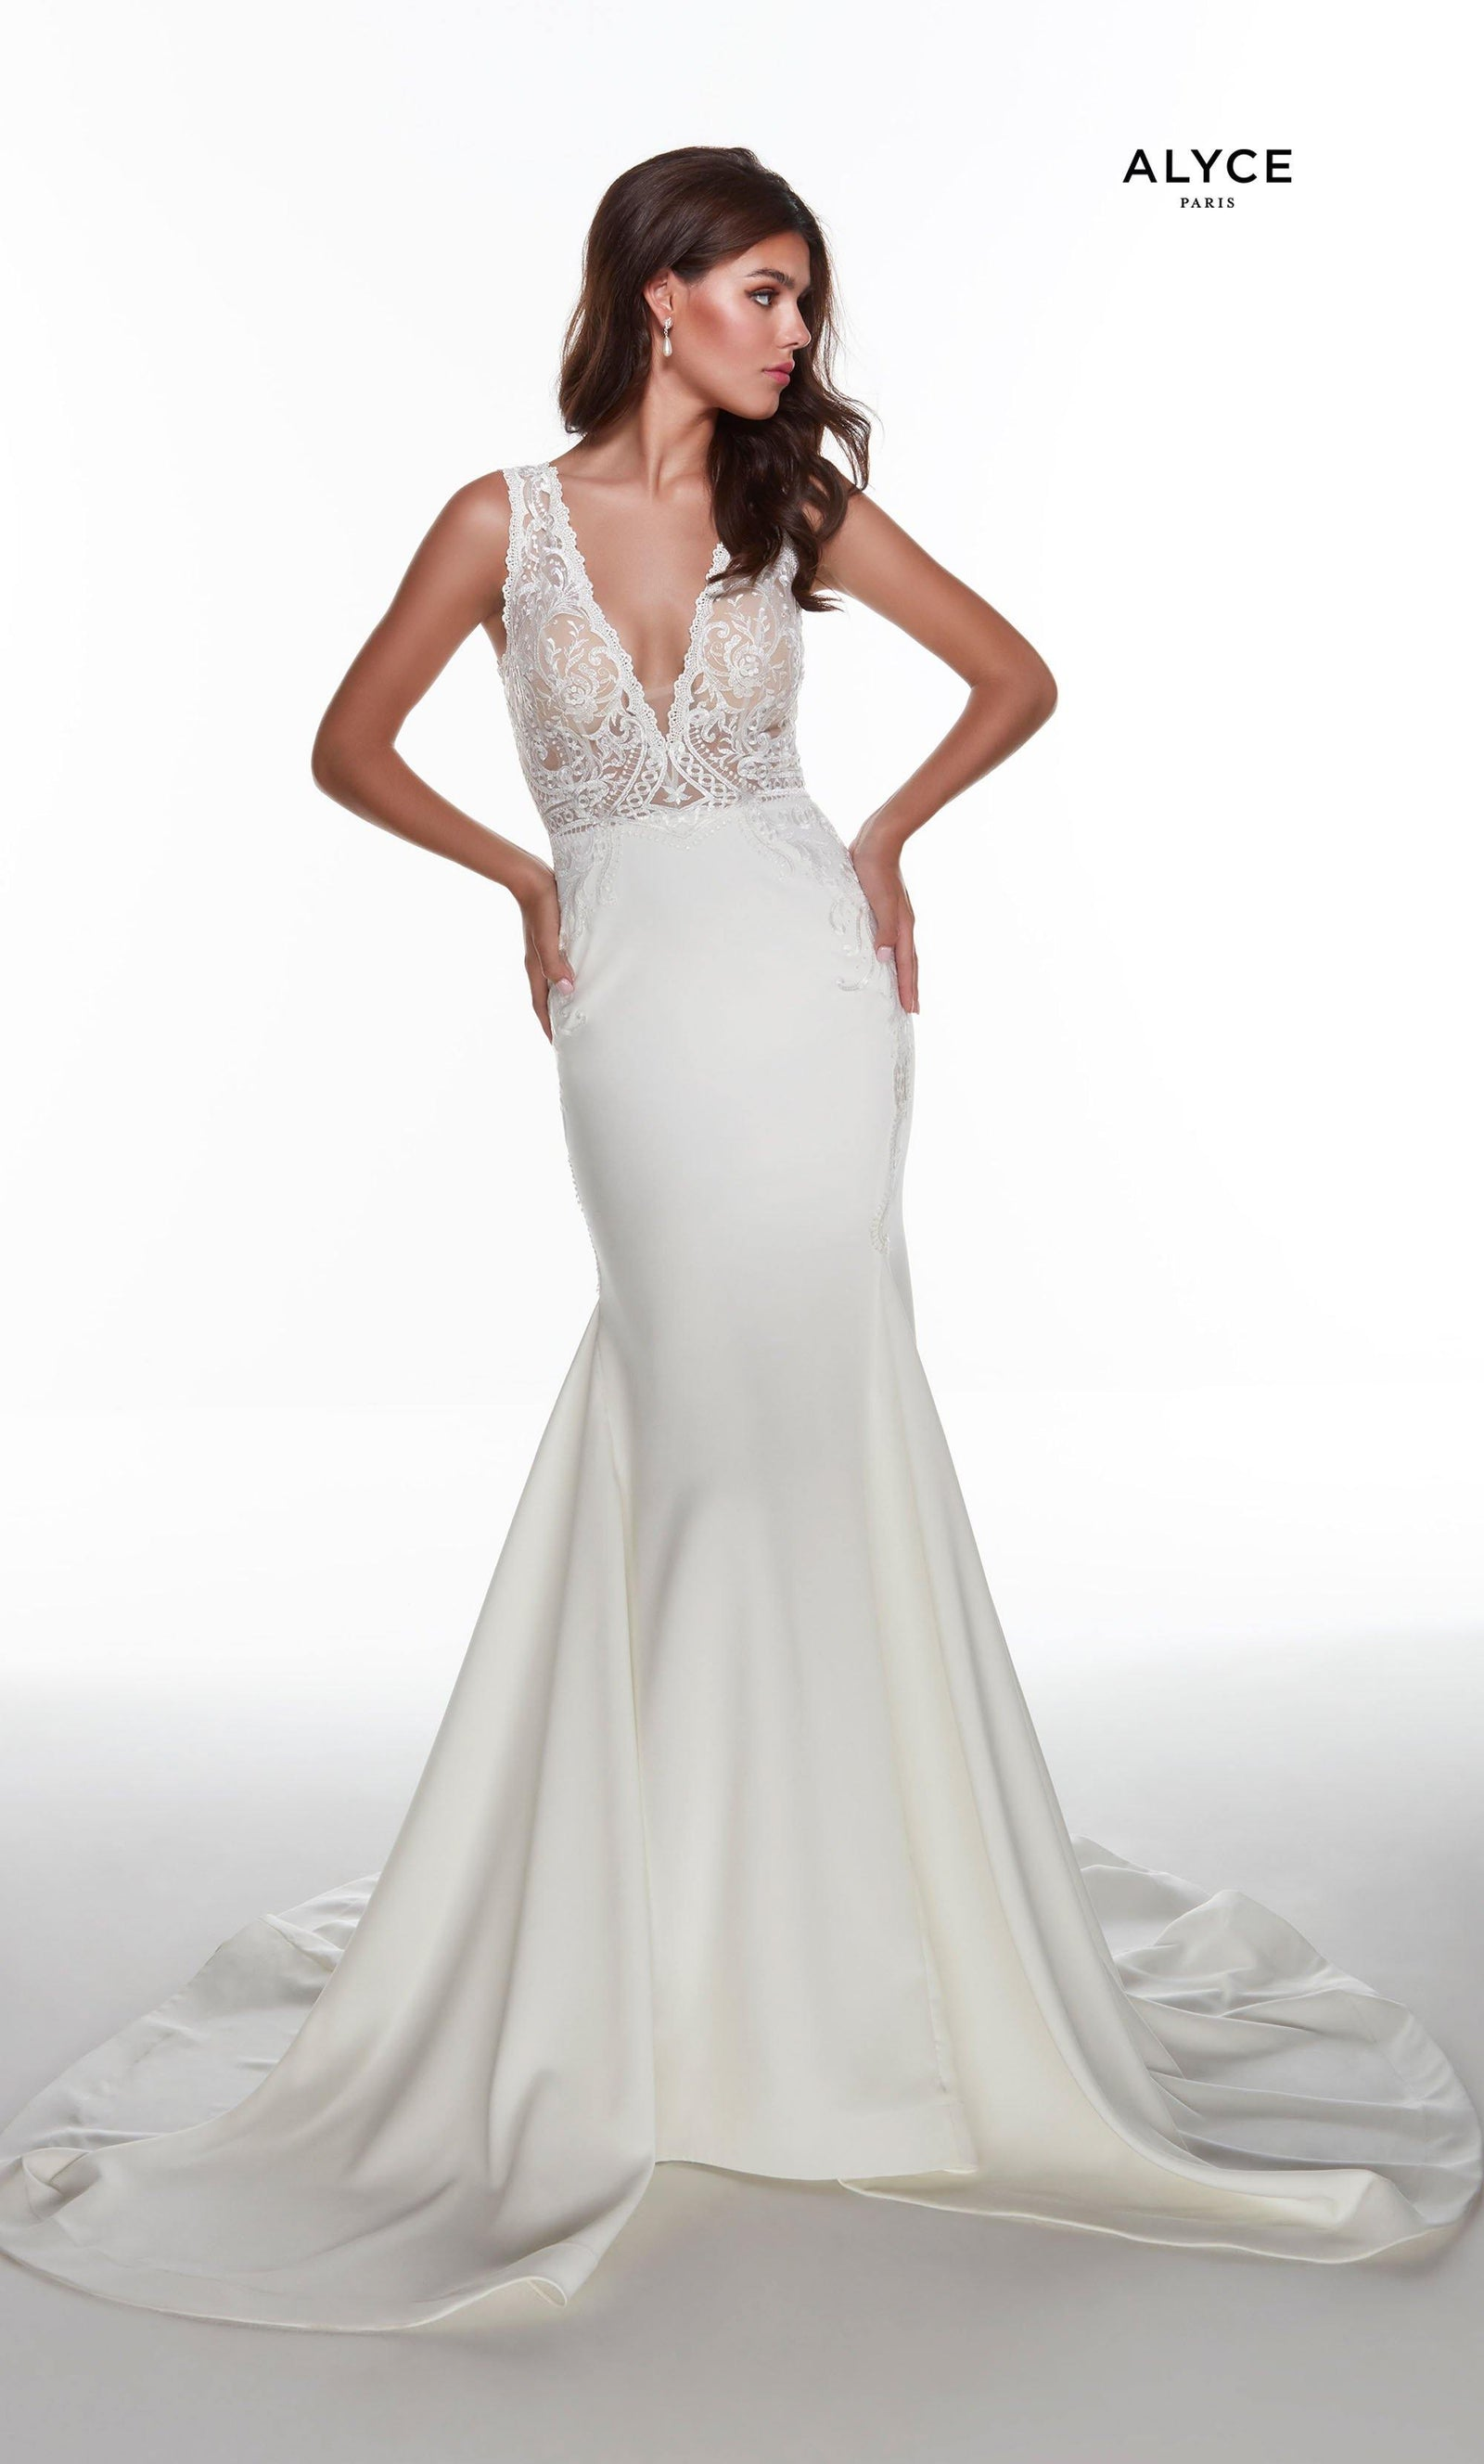 White Ivory Hi-Lo Wedding Dress Square Lace Bridal GownProm Formal Evening Dress